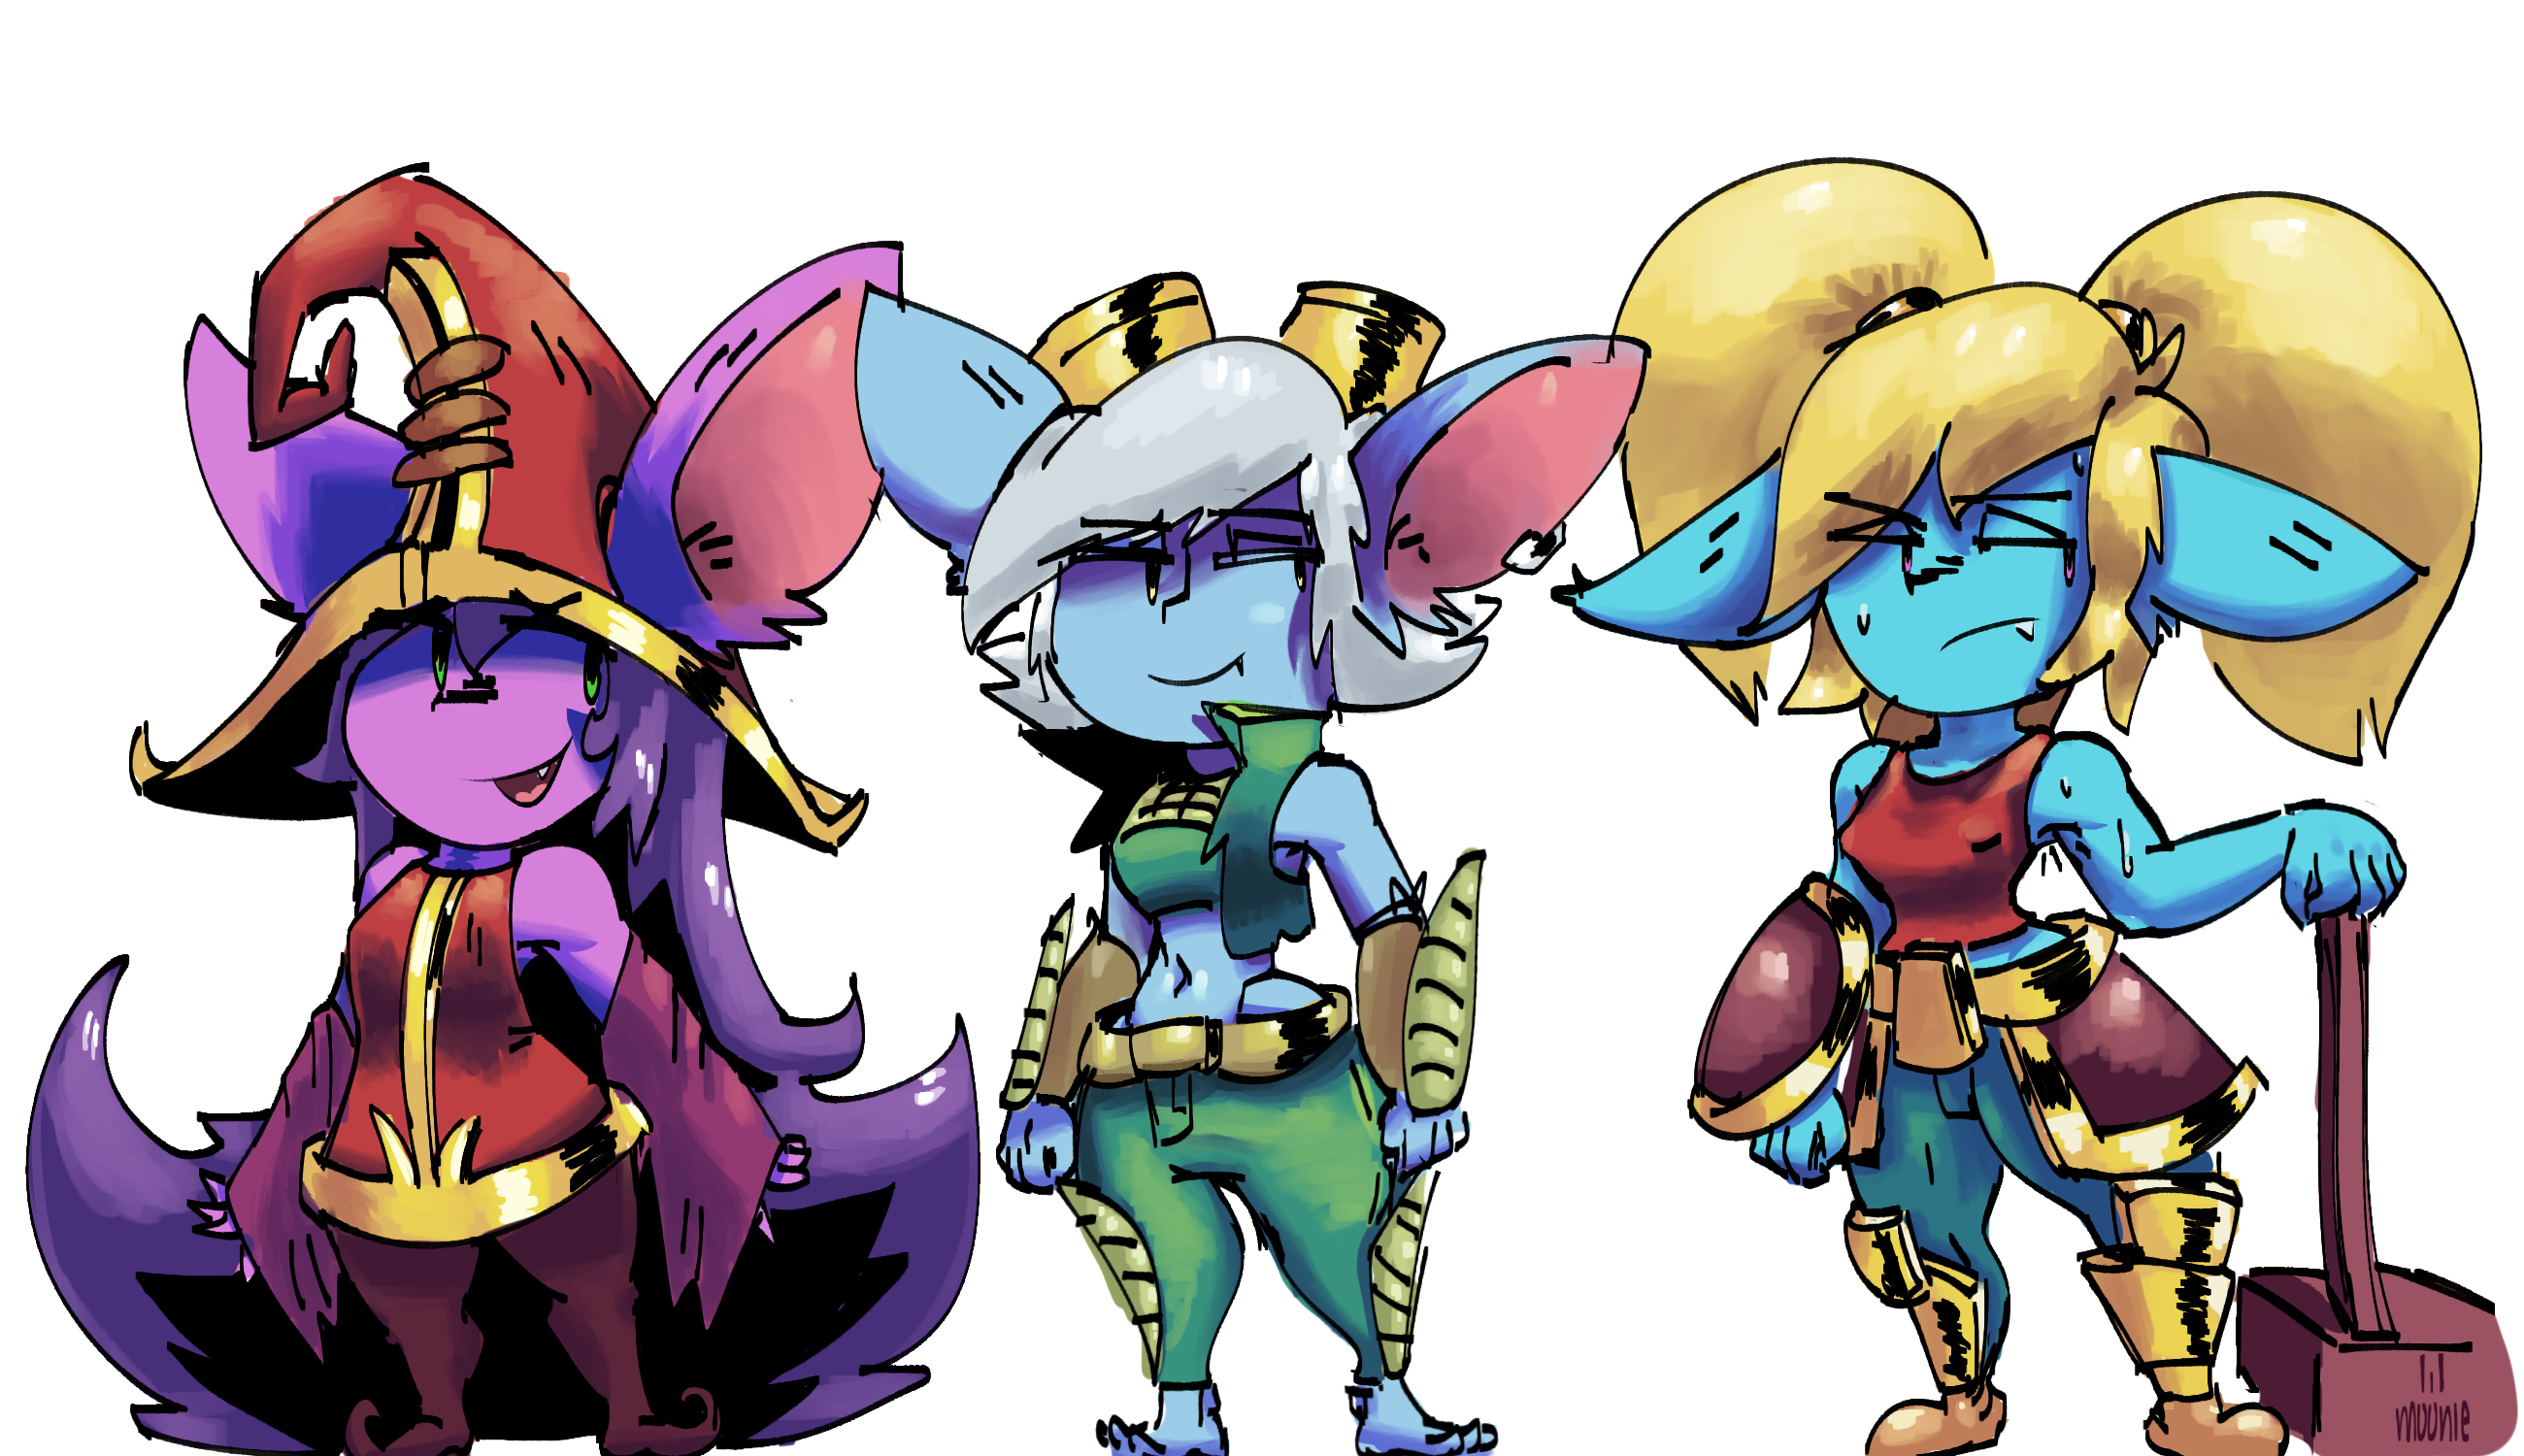 yordles doing a super dynamic and challenging pose